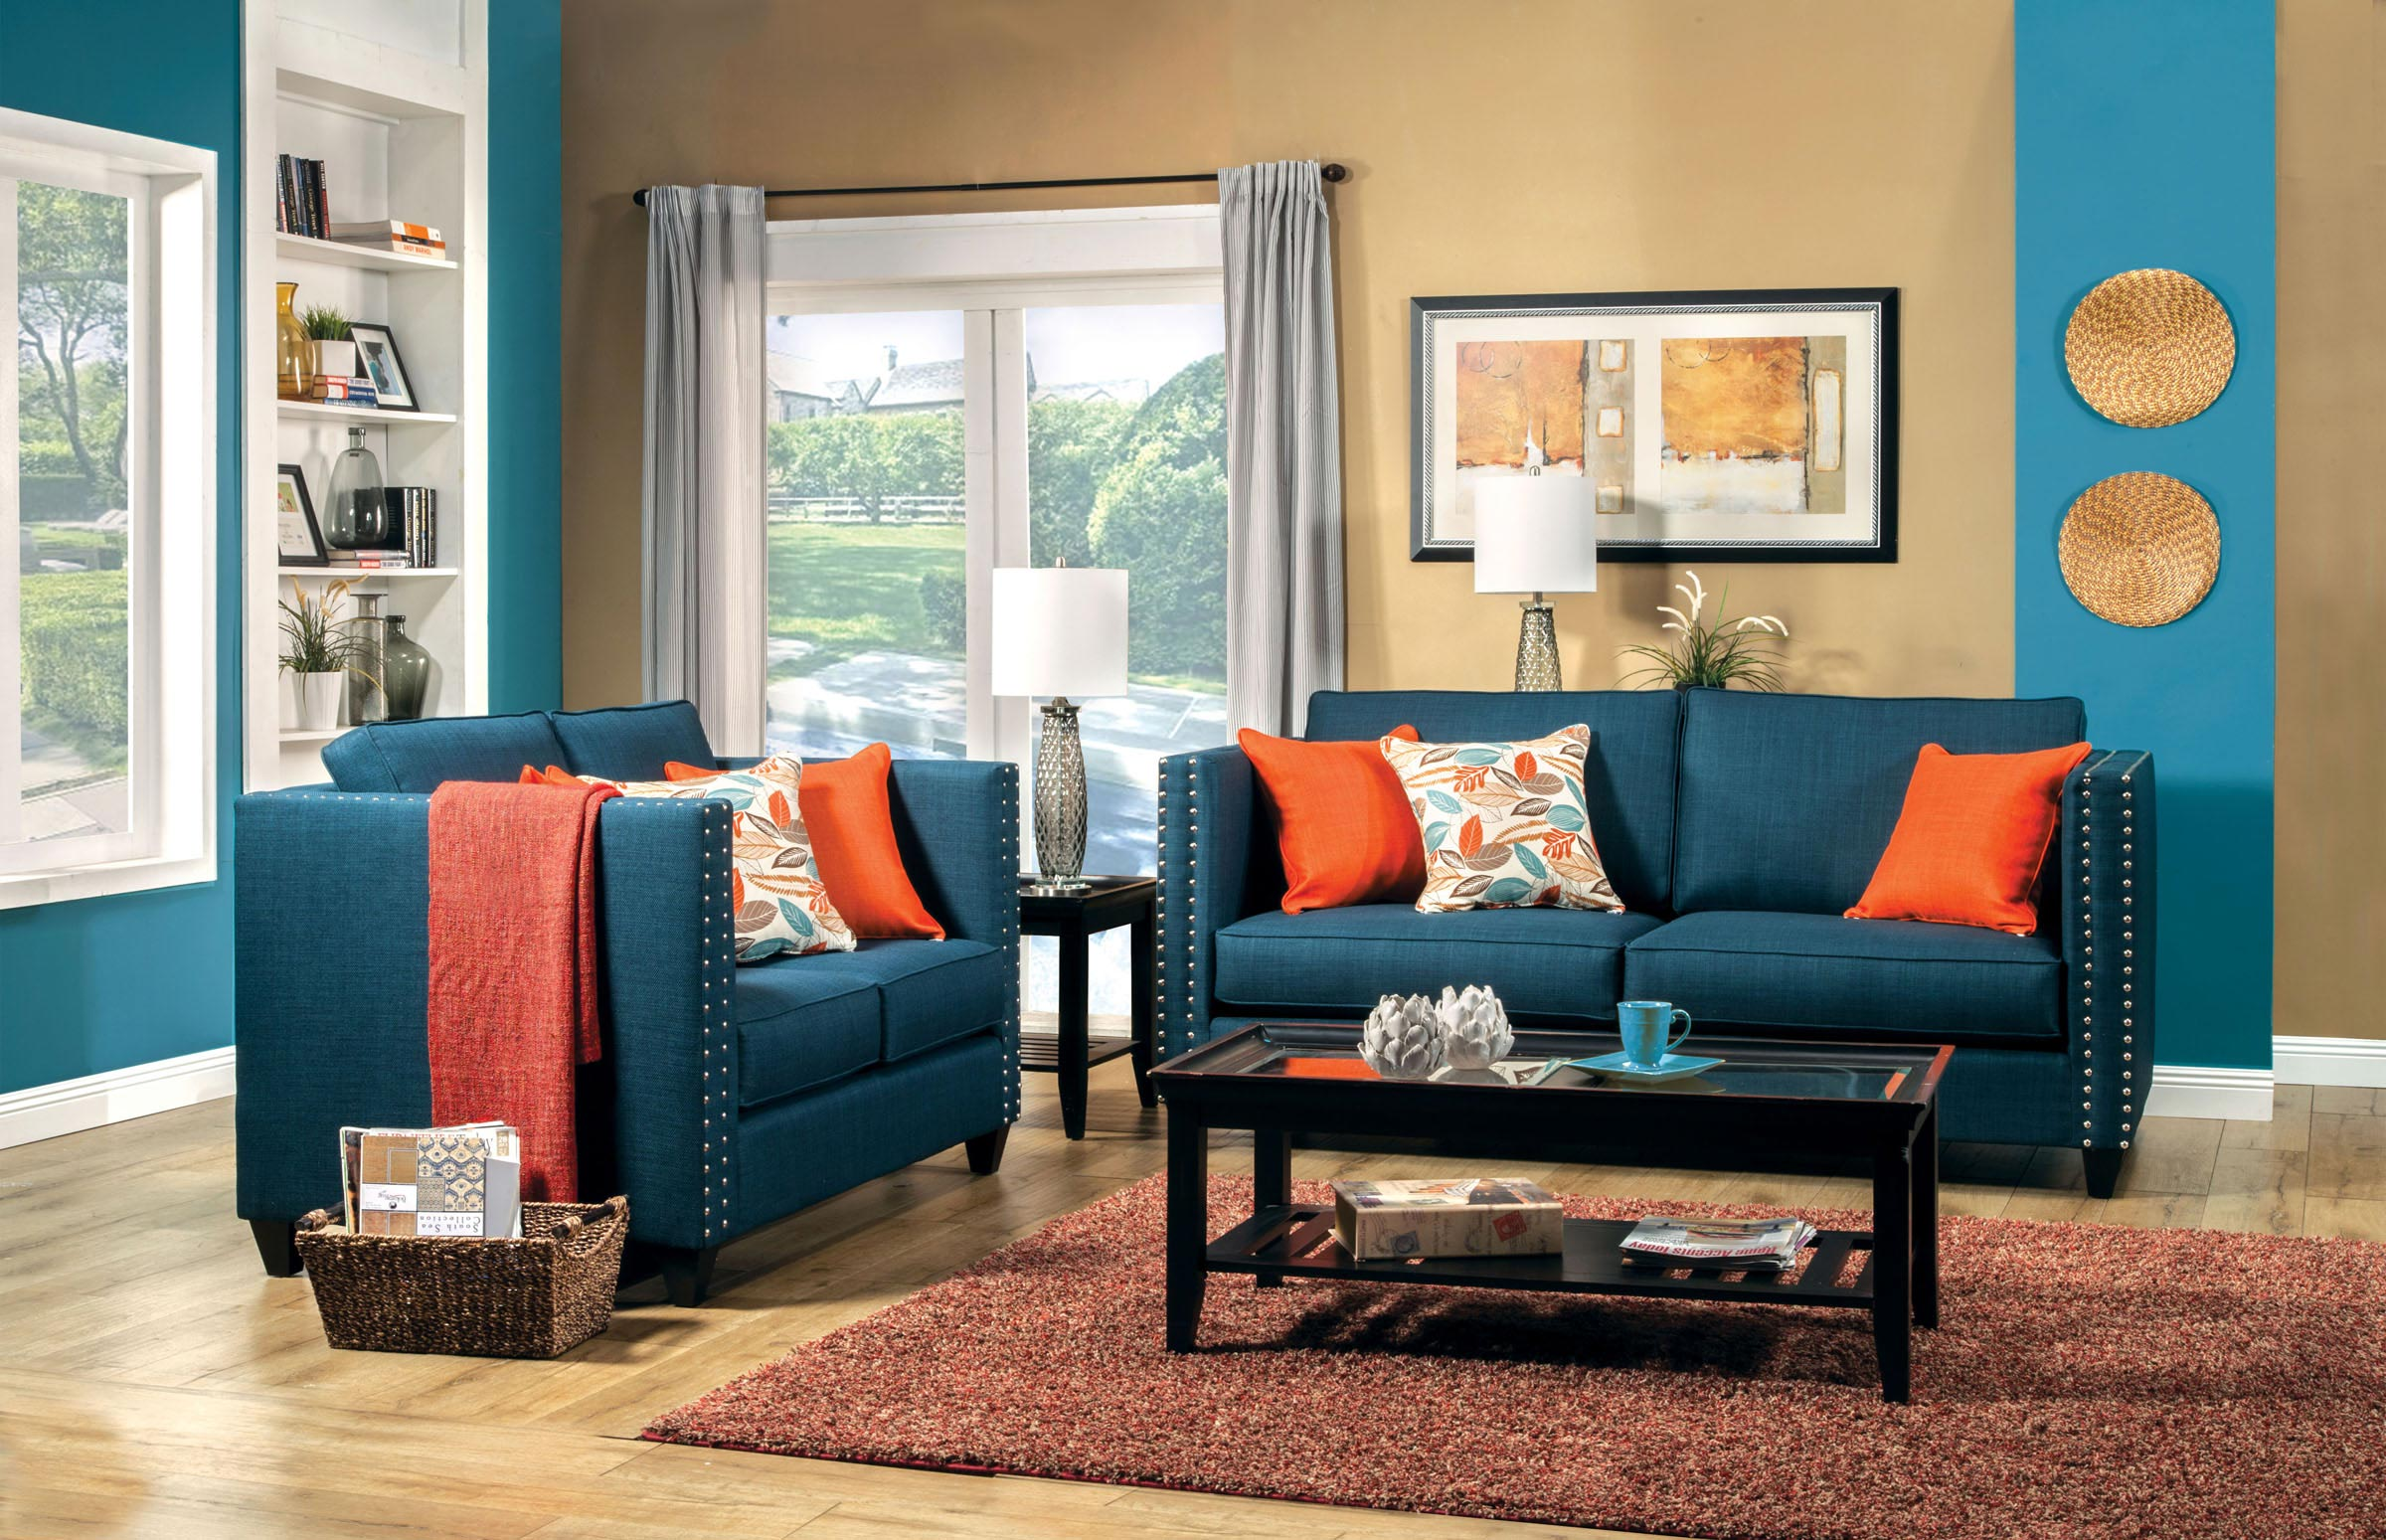 Add to my lists turquoise blue sofa